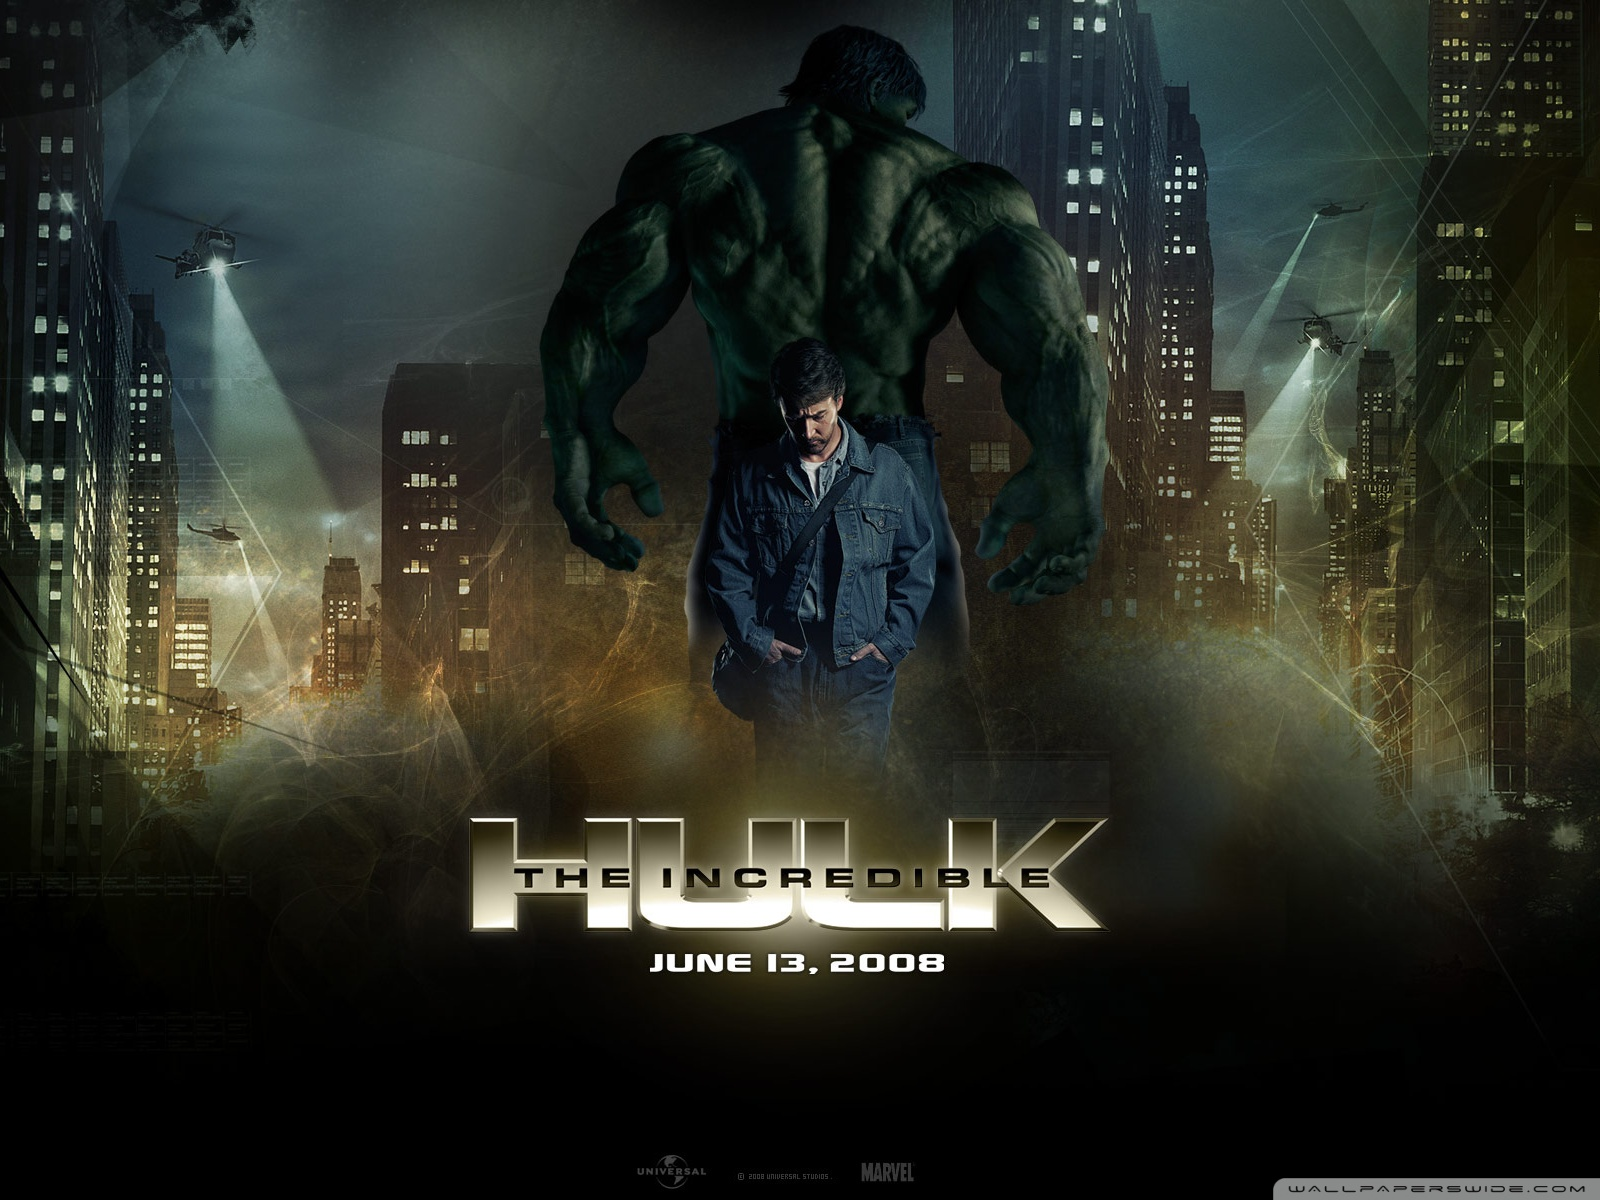 The Incredible Hulk 2 4K HD Desktop Wallpaper for 4K Ultra HD 1600x1200